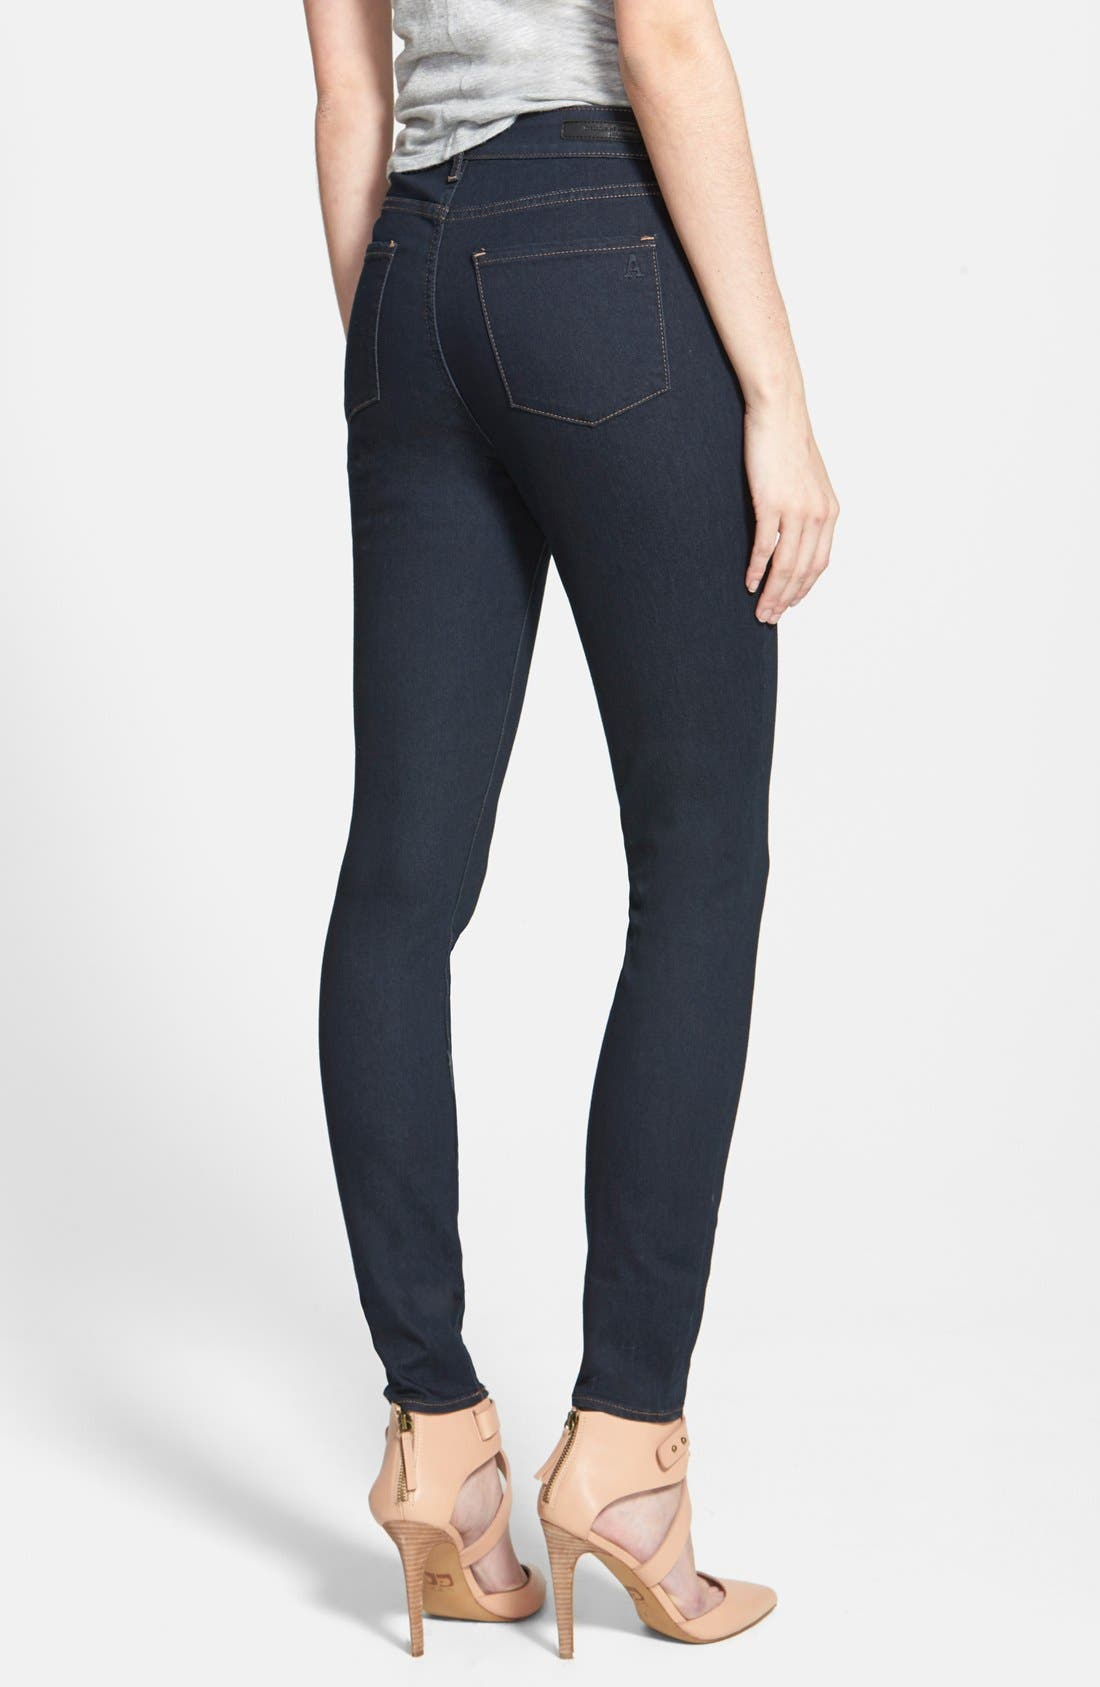 Alternate Image 2  - Articles of Society 'Halley' High Waist Stretch Skinny Jeans